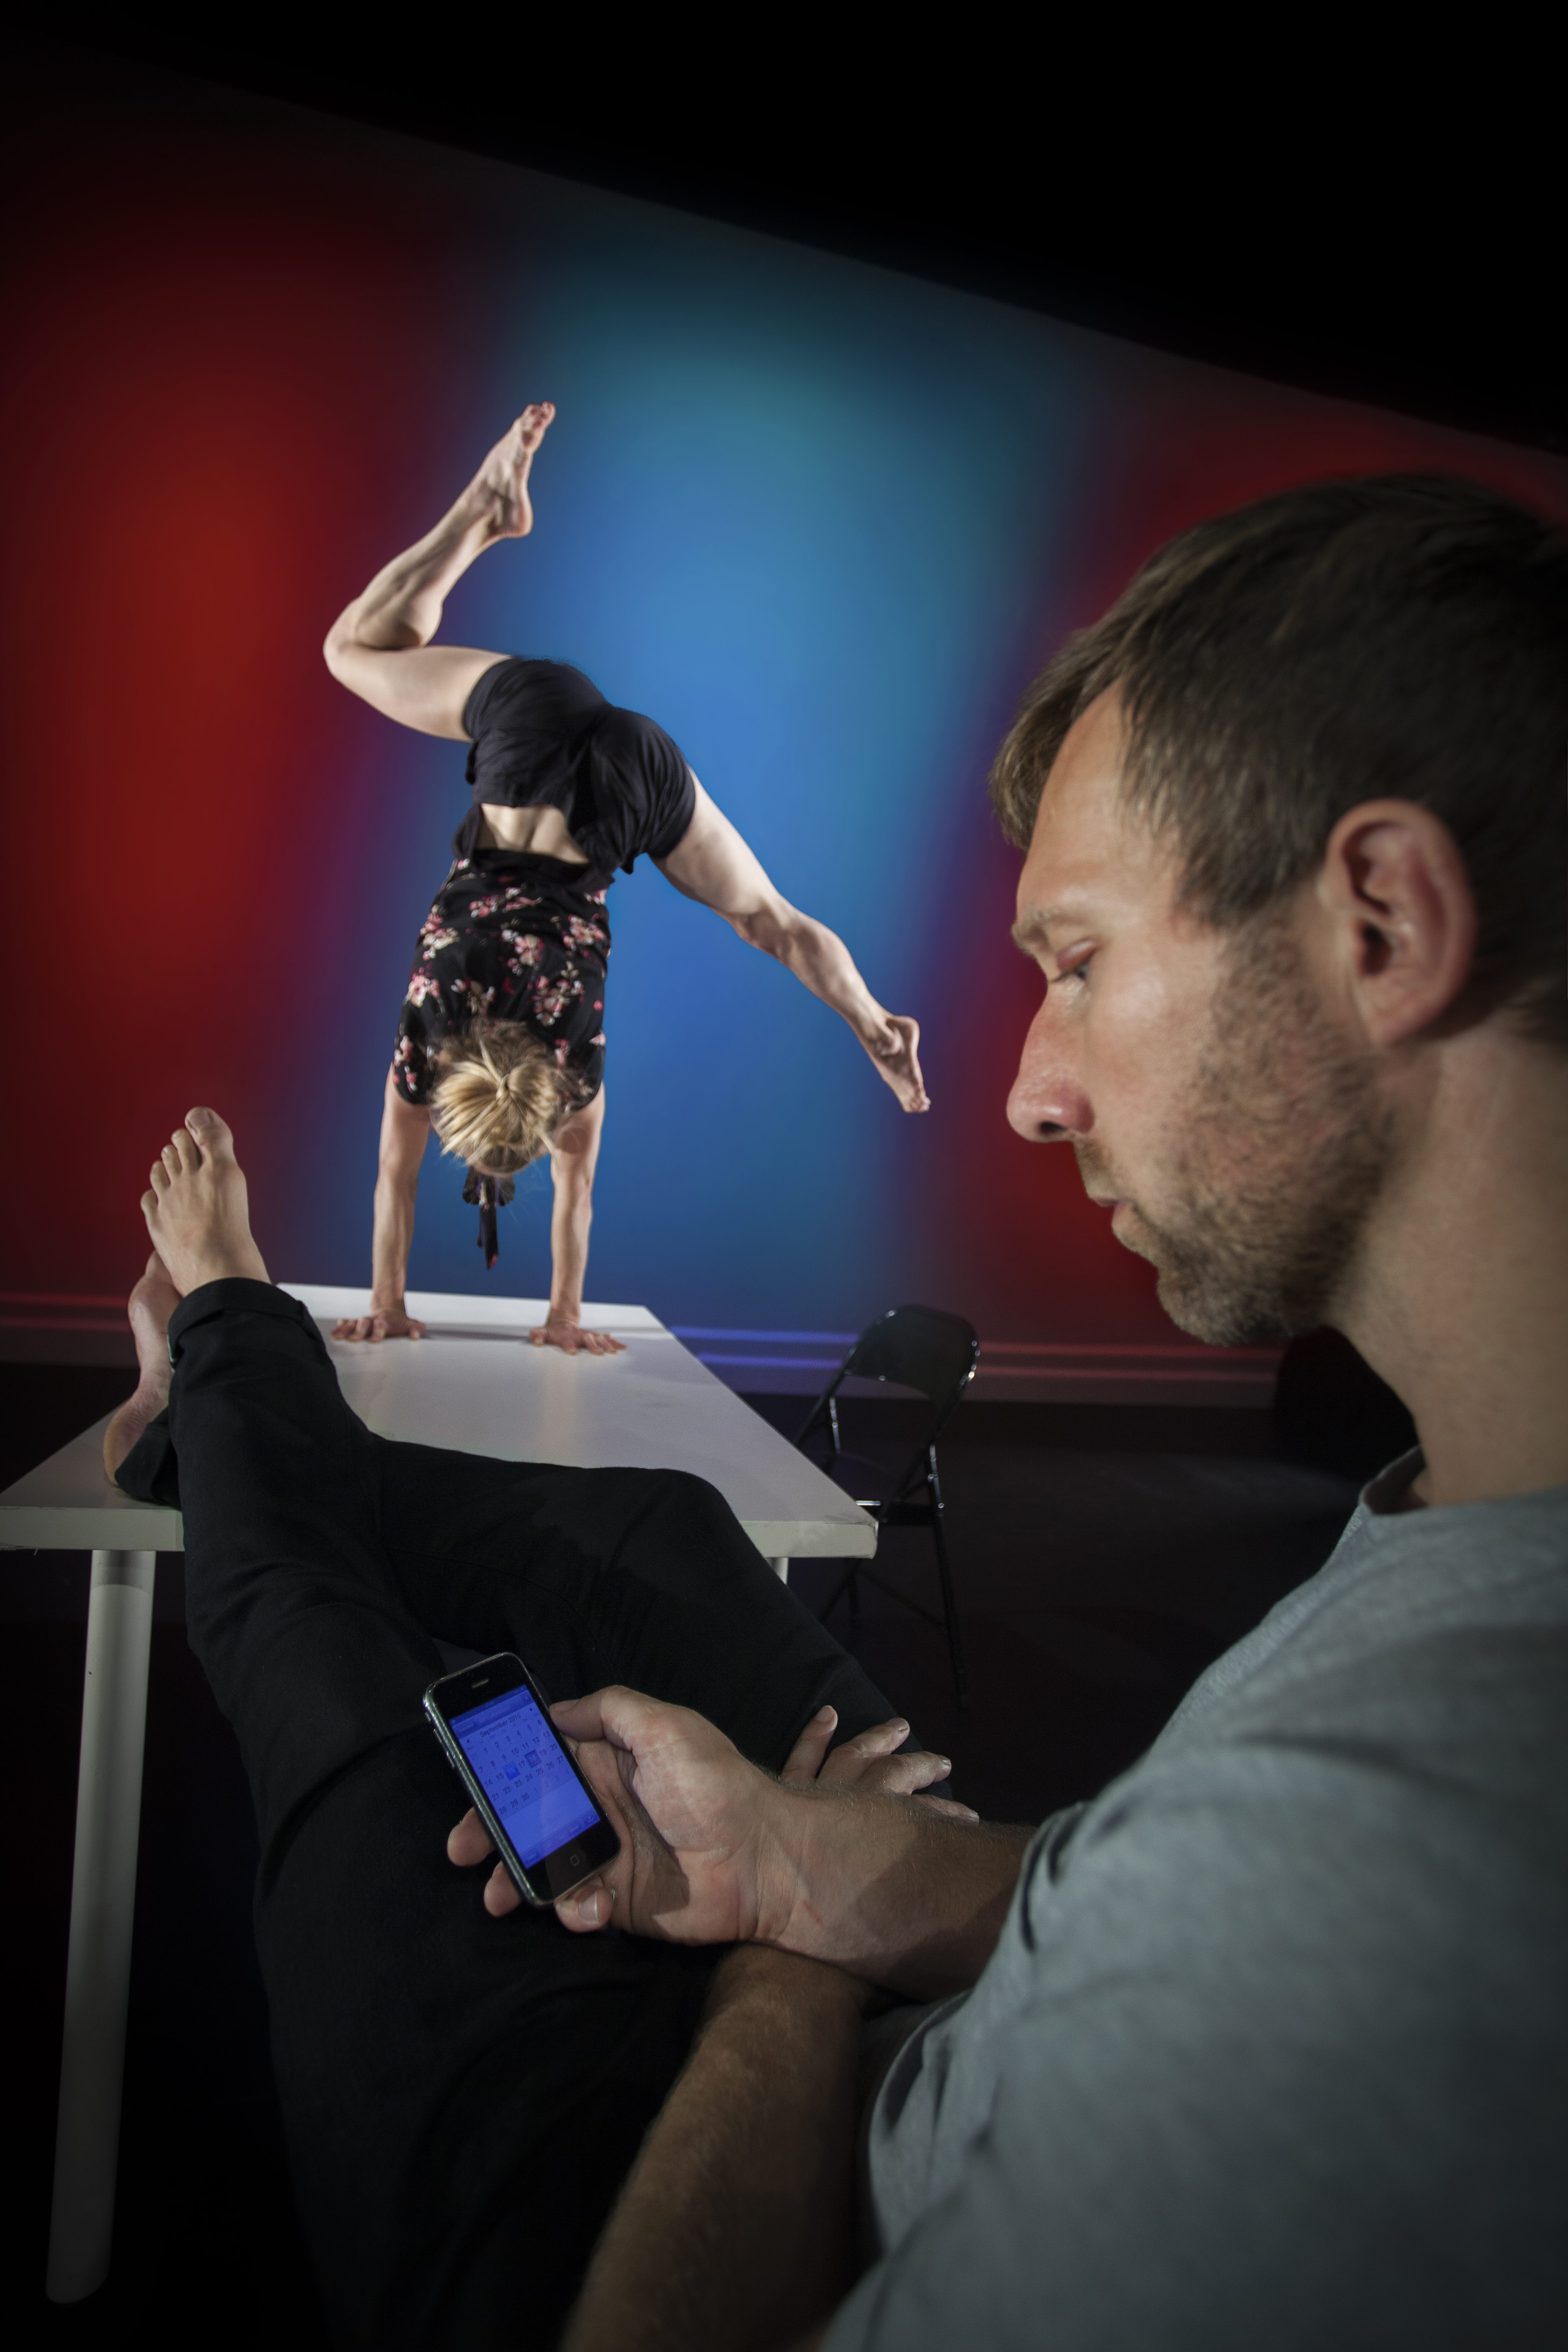 In the background, one dancer stands on her hands on a table, in the foreground a man stands staring at his mobile phone